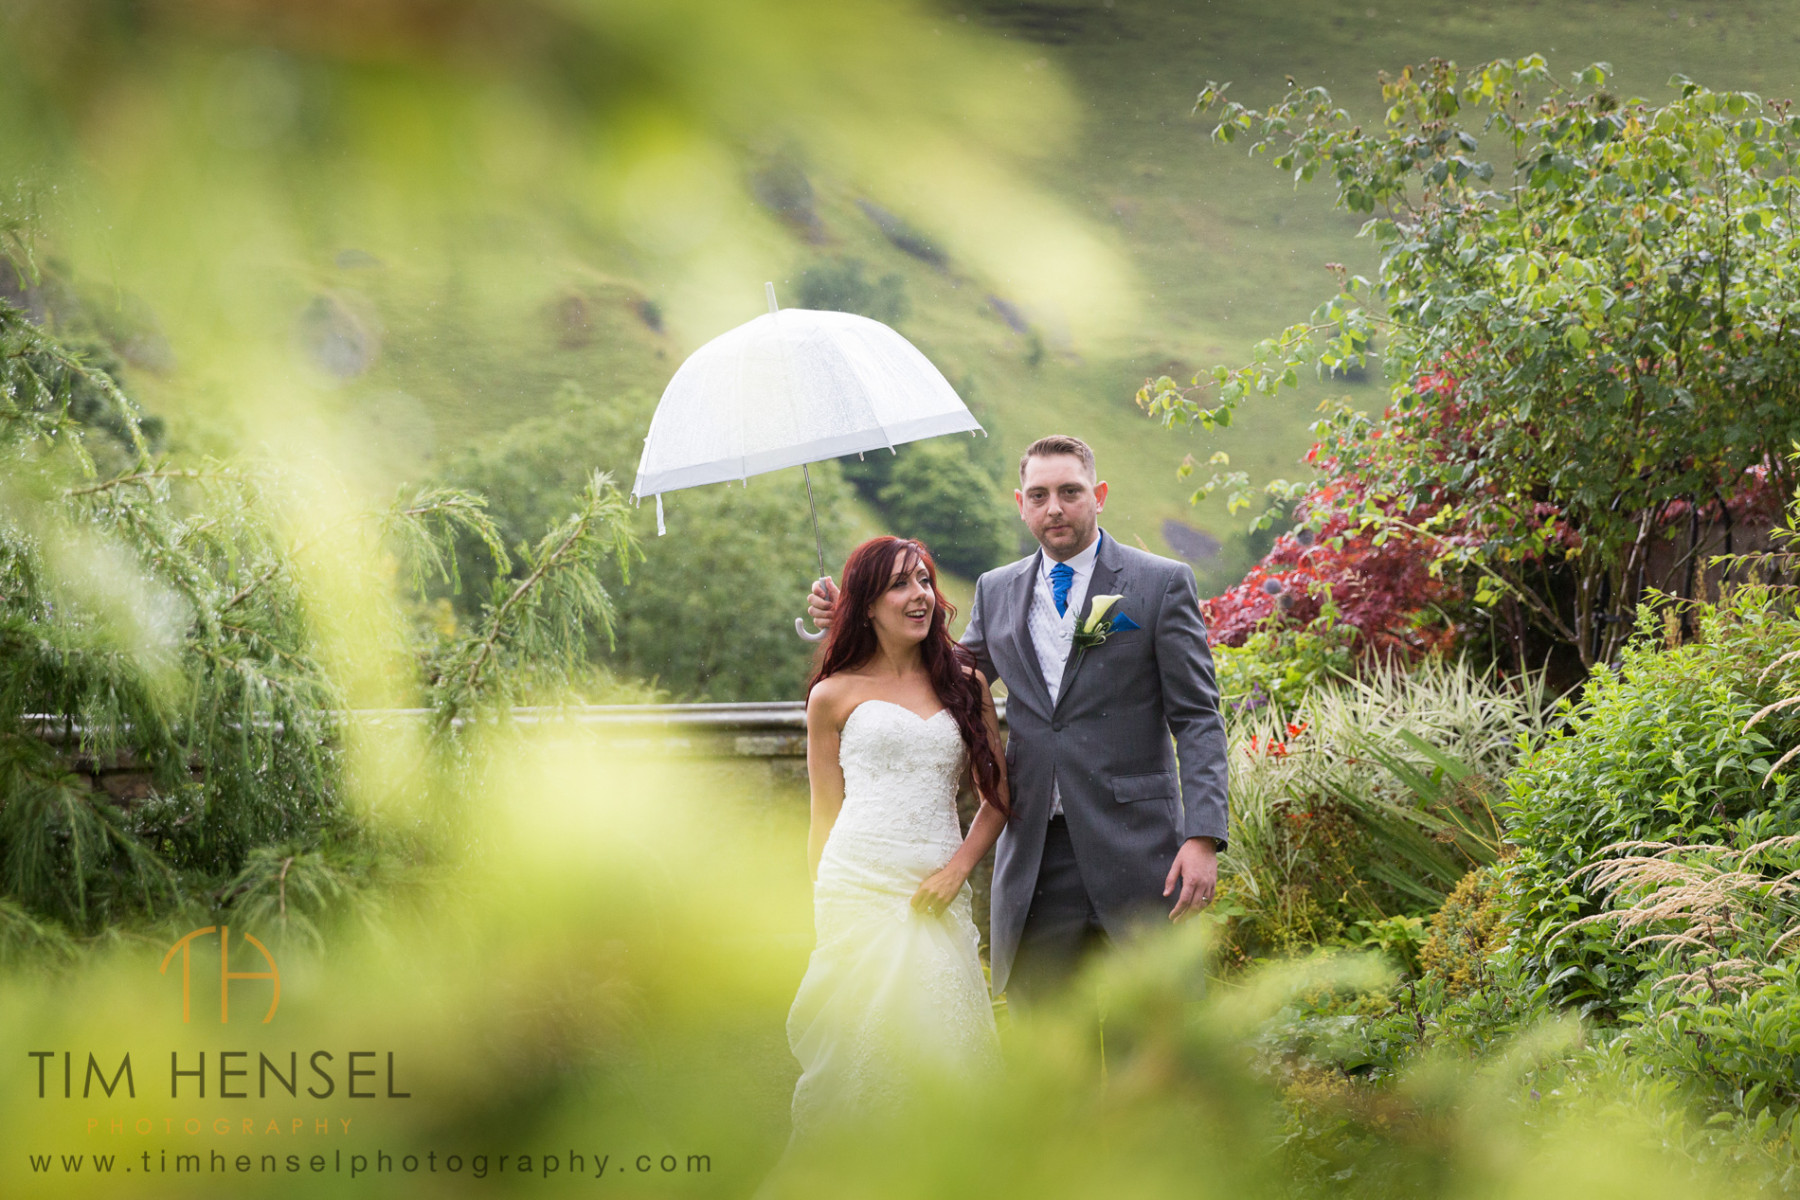 Plan your wedding even in bad weather